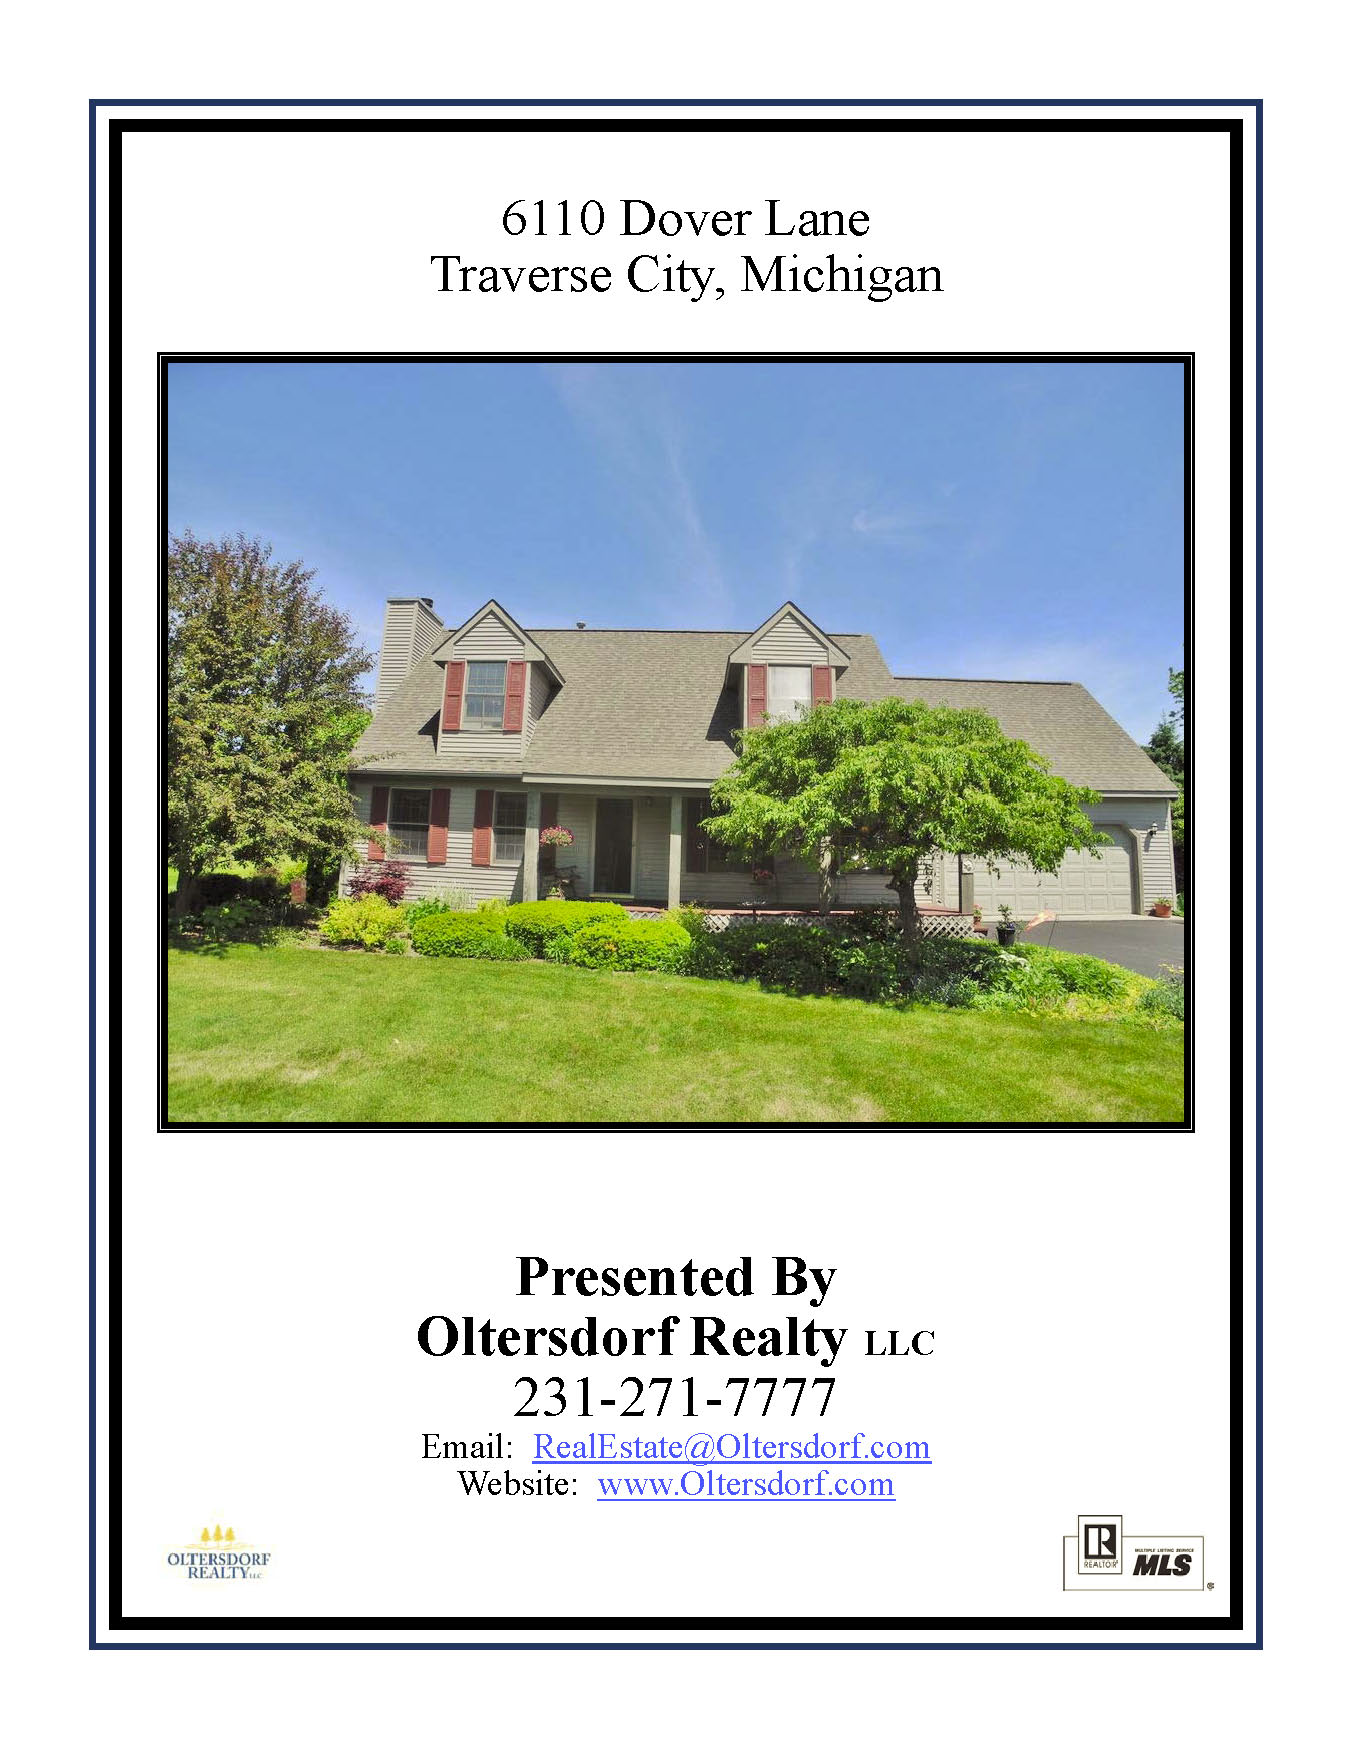 6110 Dover Lane, Traverse City Marketing packet by Oltersdorf Realty LLC (1).jpg